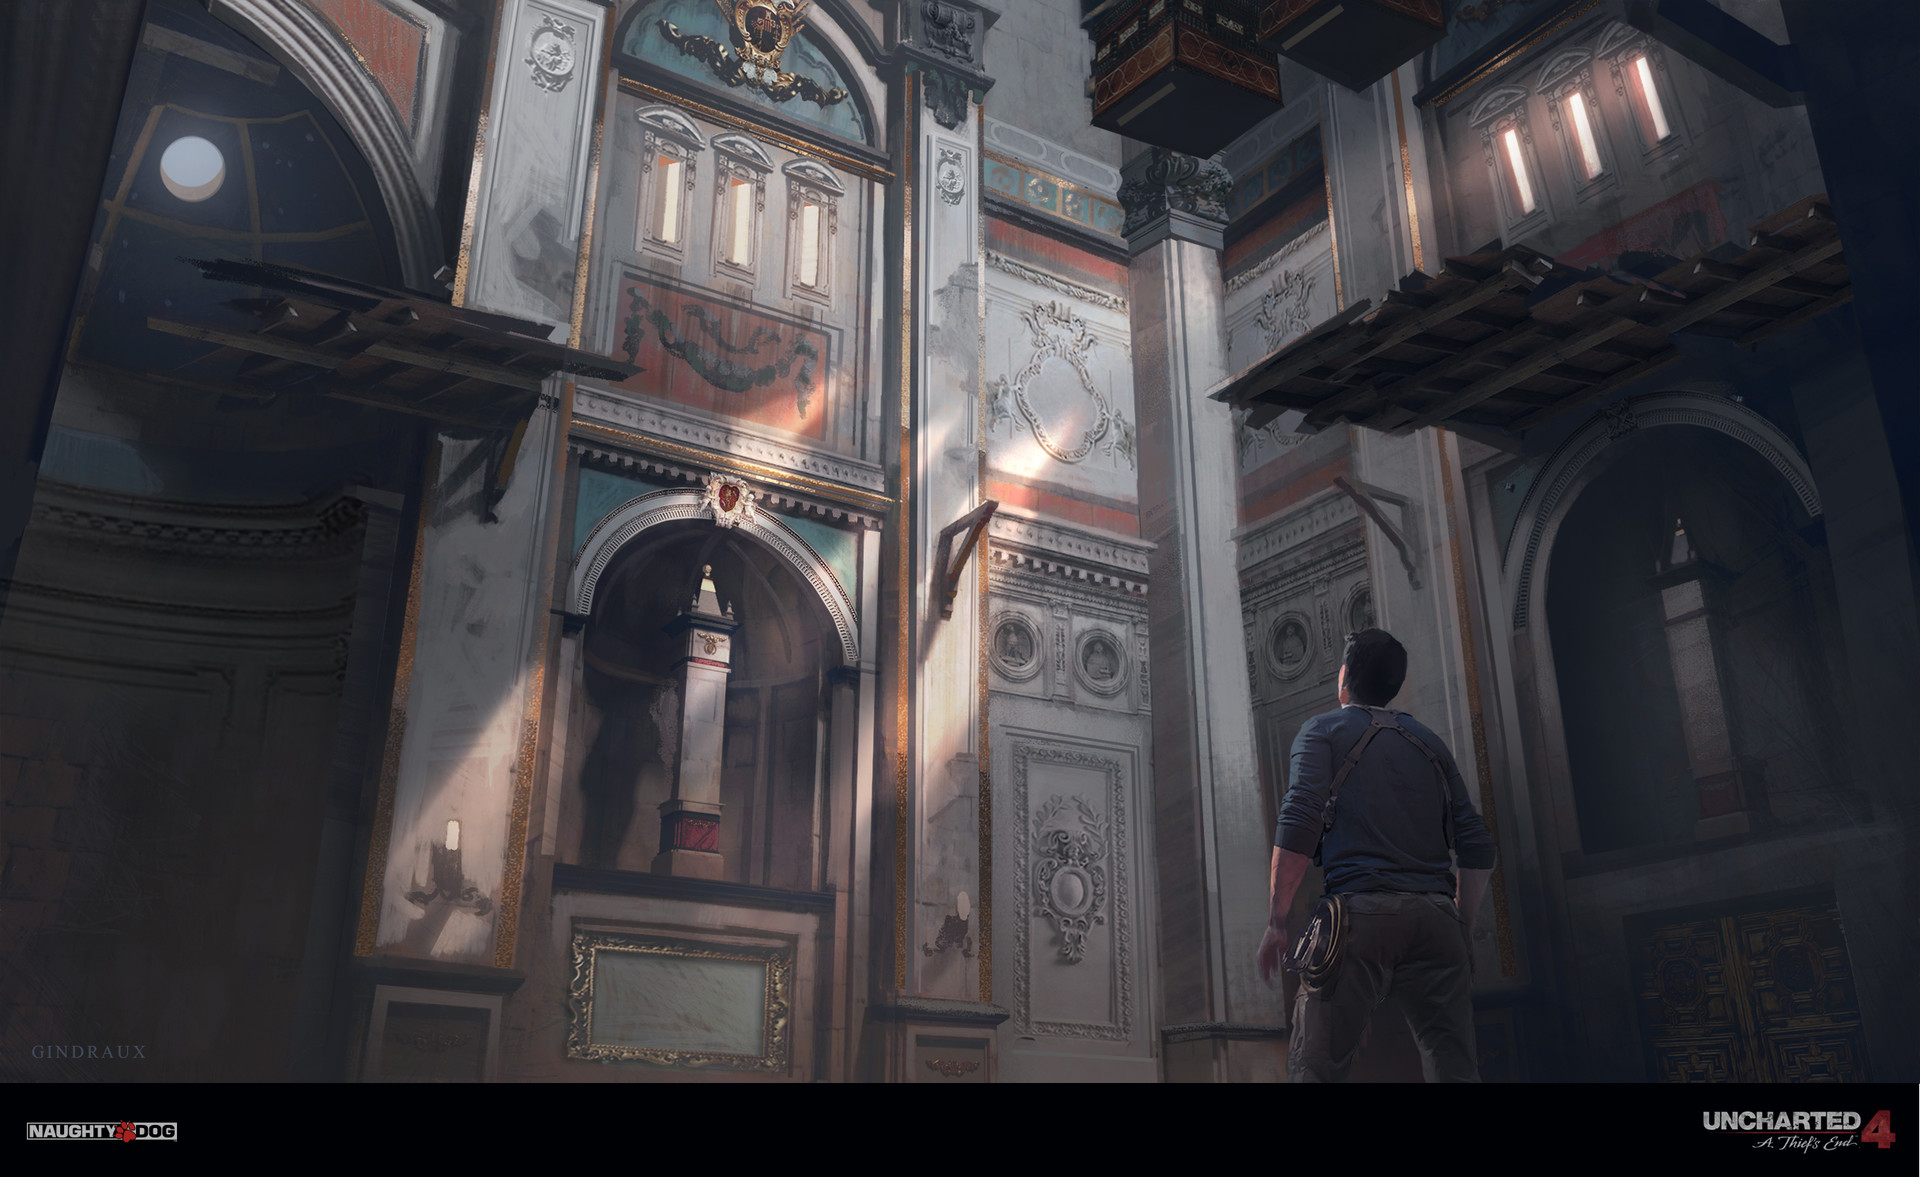 Nick Gindraux Digital Painting Concept art Uncharted 4 ClockTower